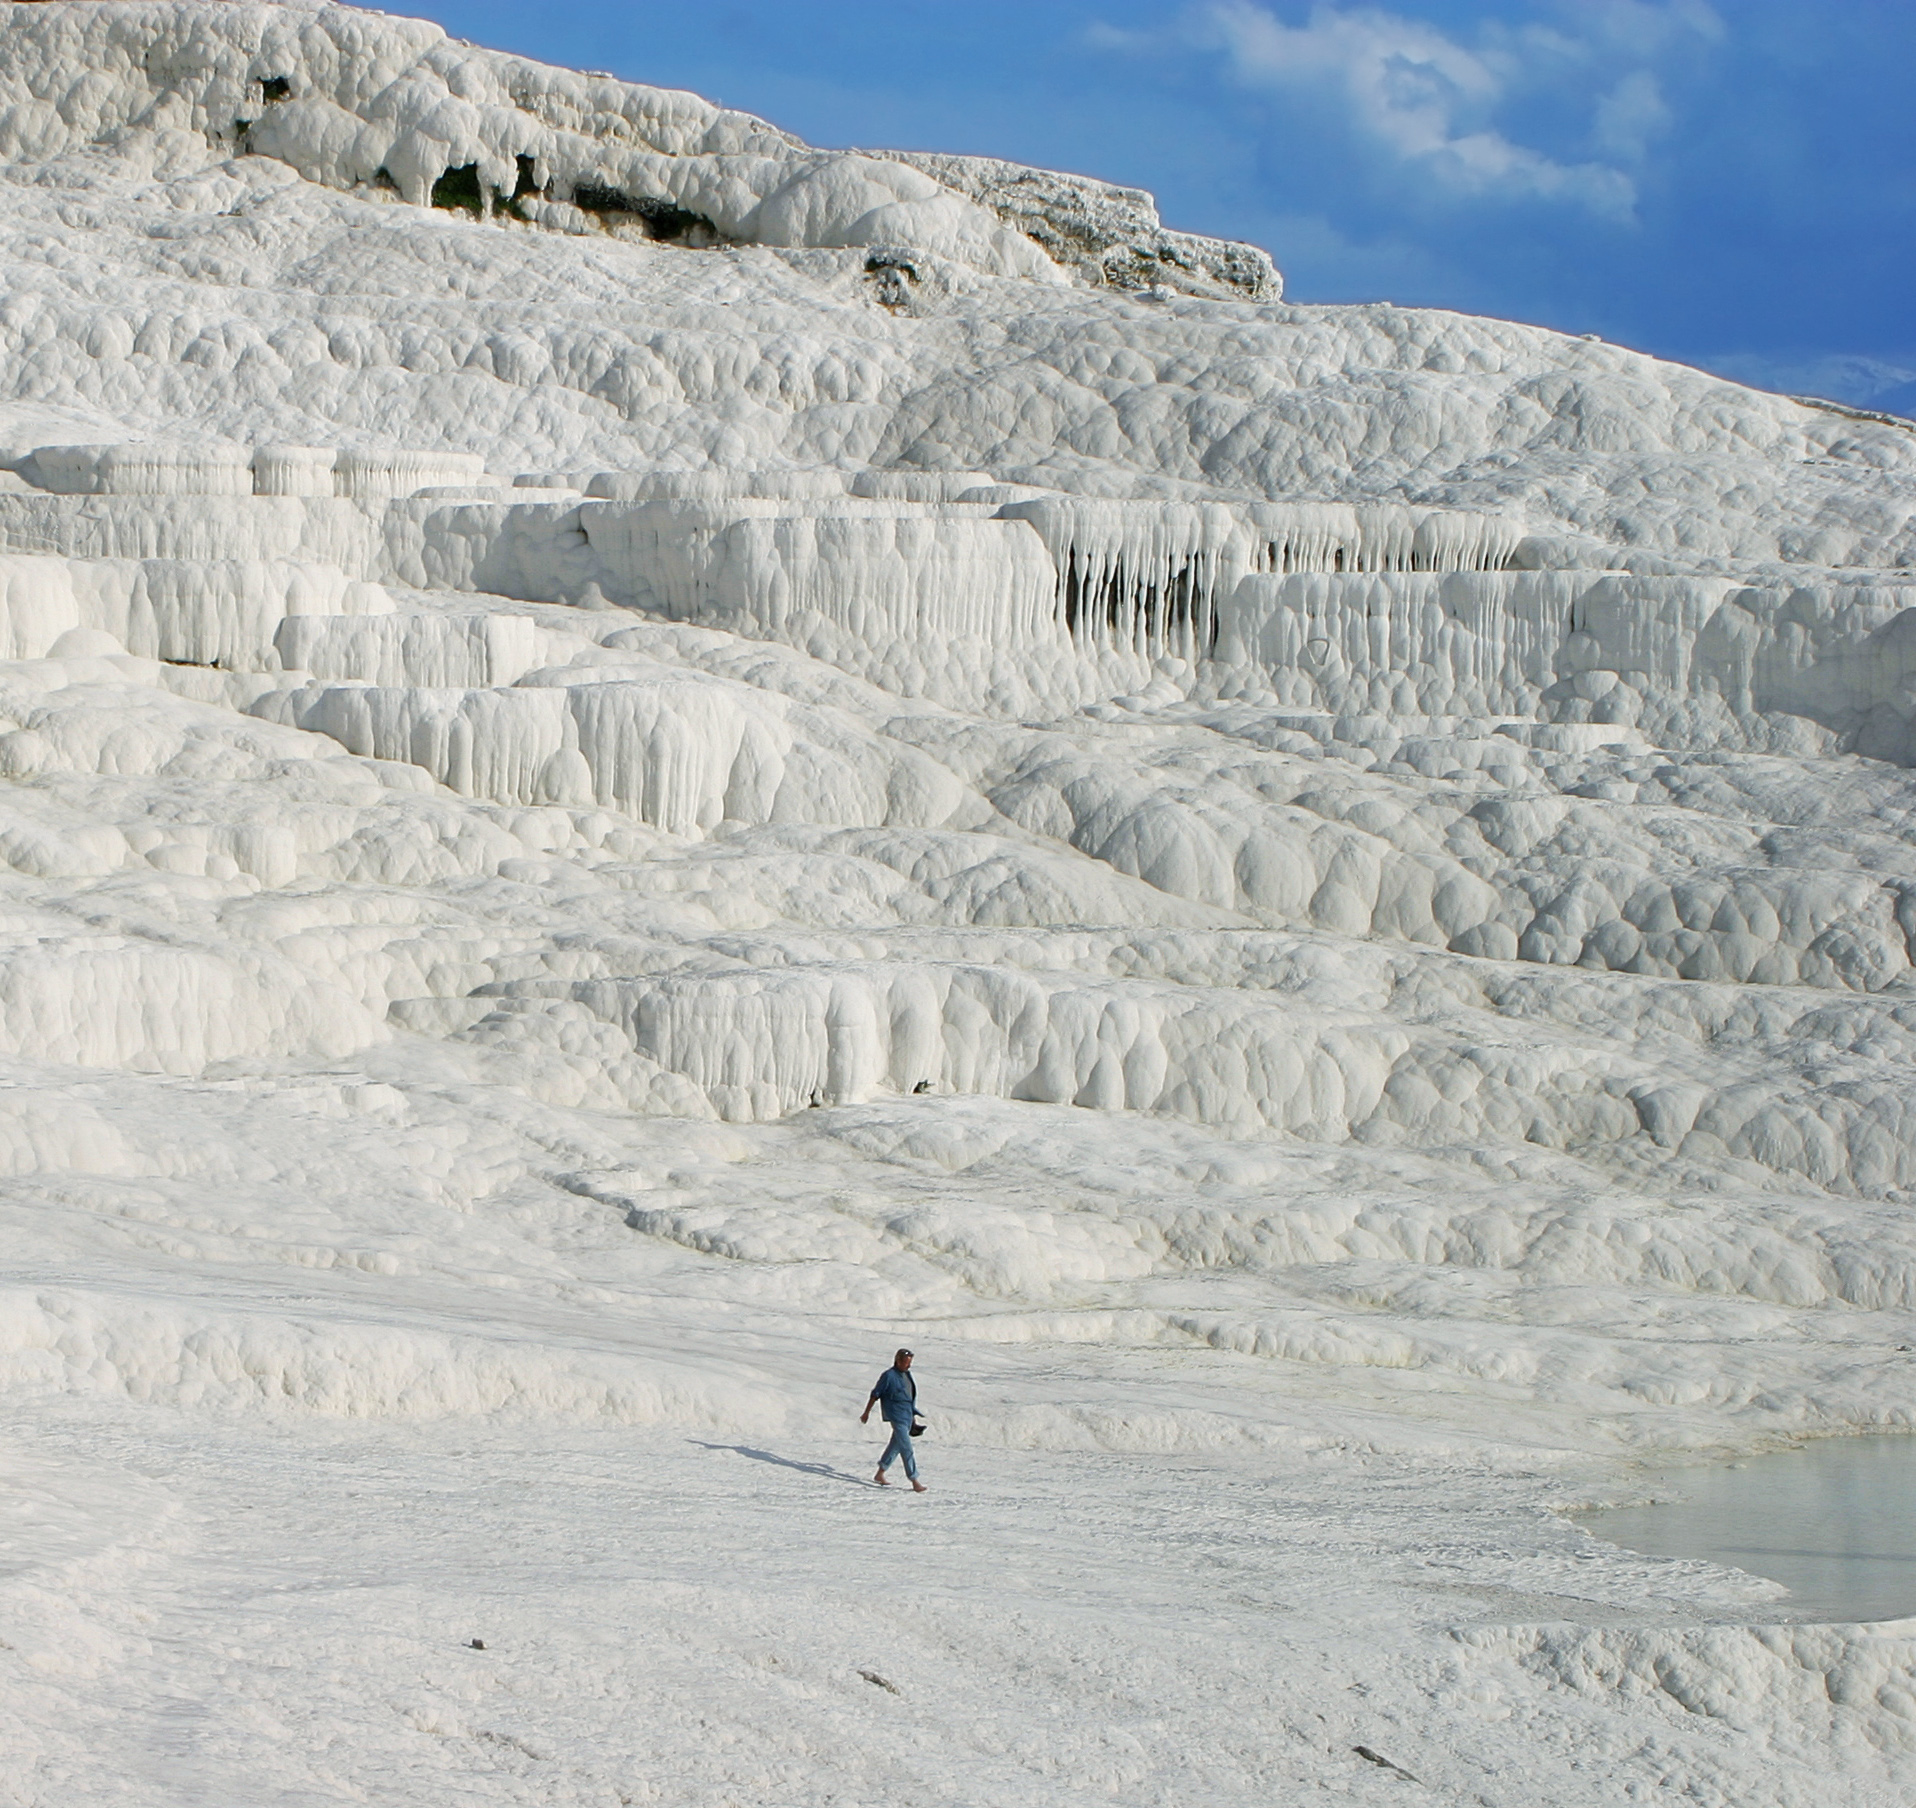 Hot_springs_of_Pamukkale_edit_cropped.JPG